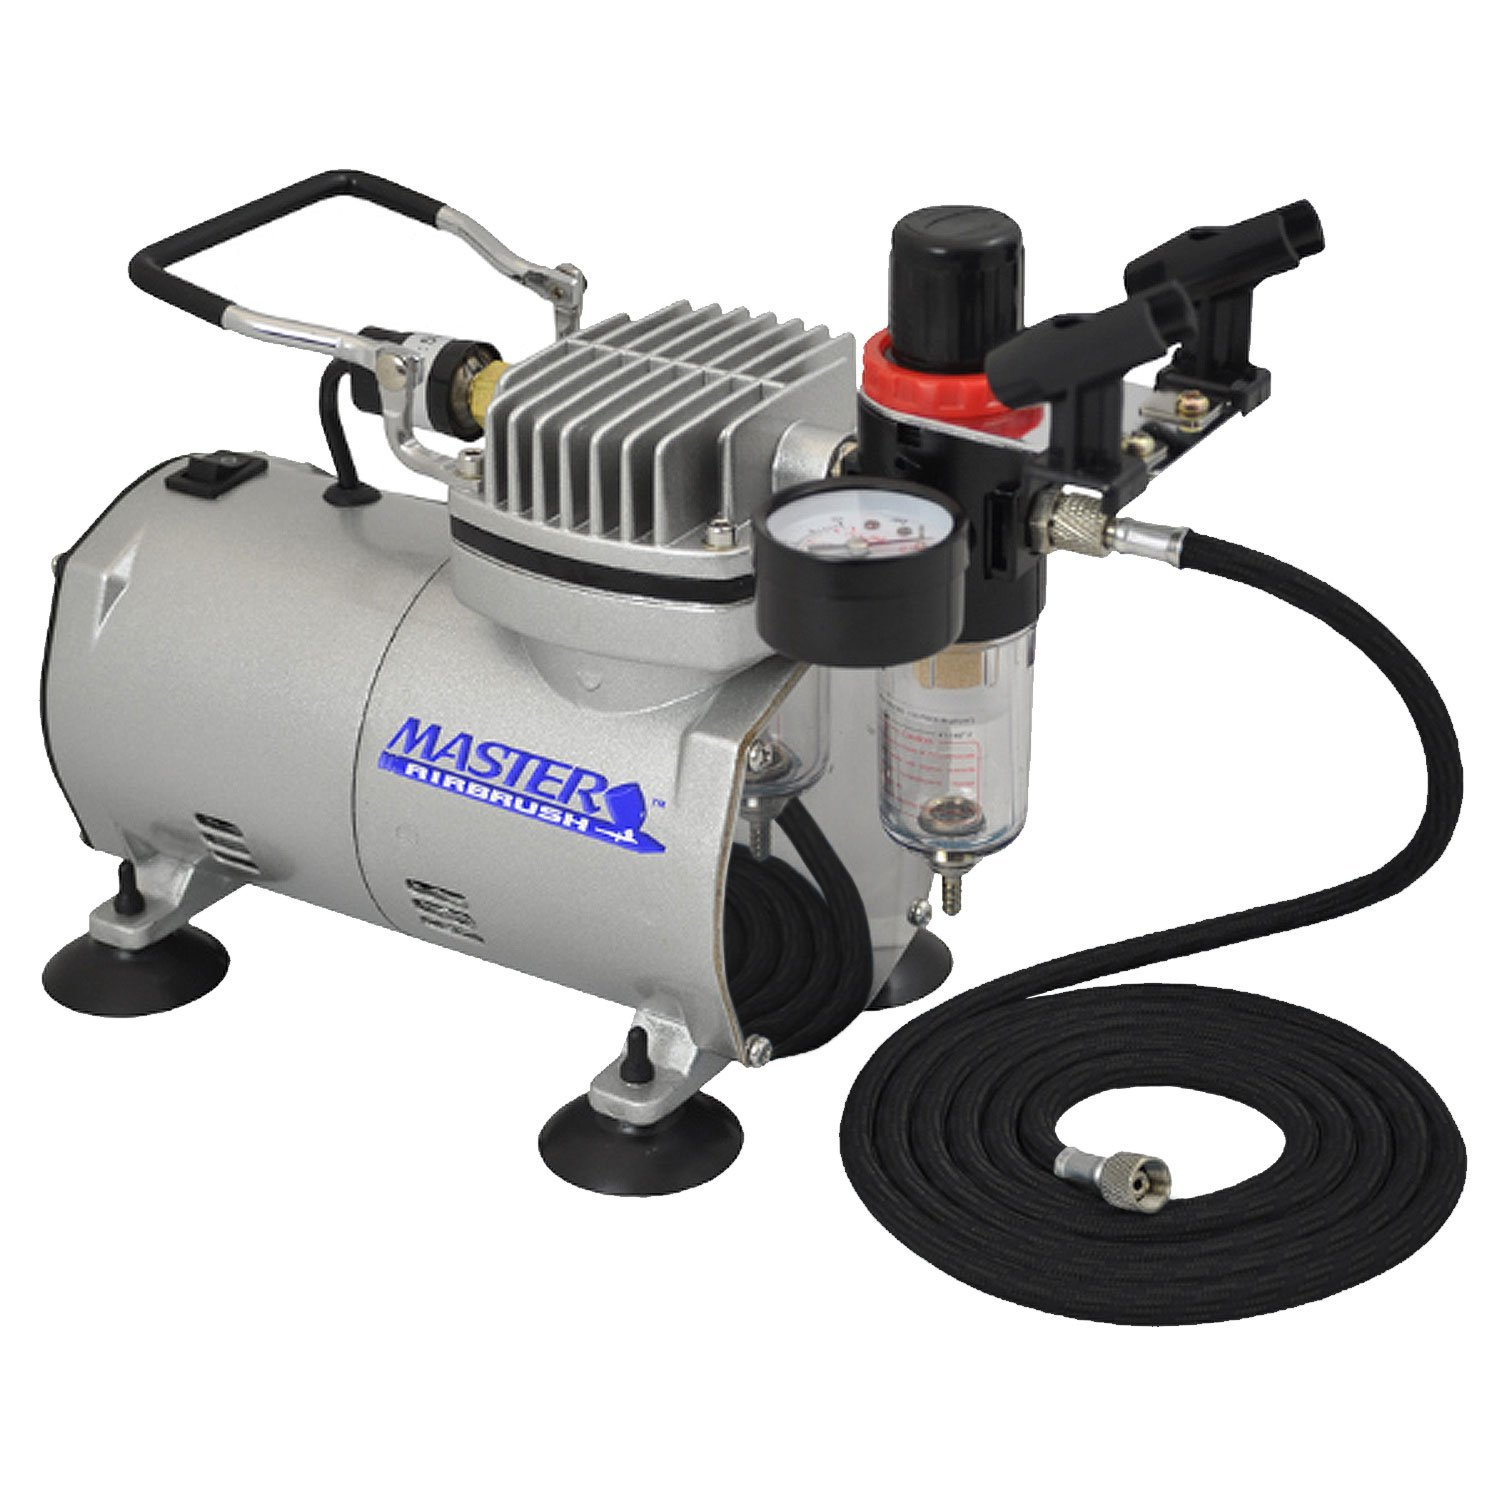 Review - Master Airbrush High Performance Airbrush Air Compressor with Filter (2019 UPDATE)